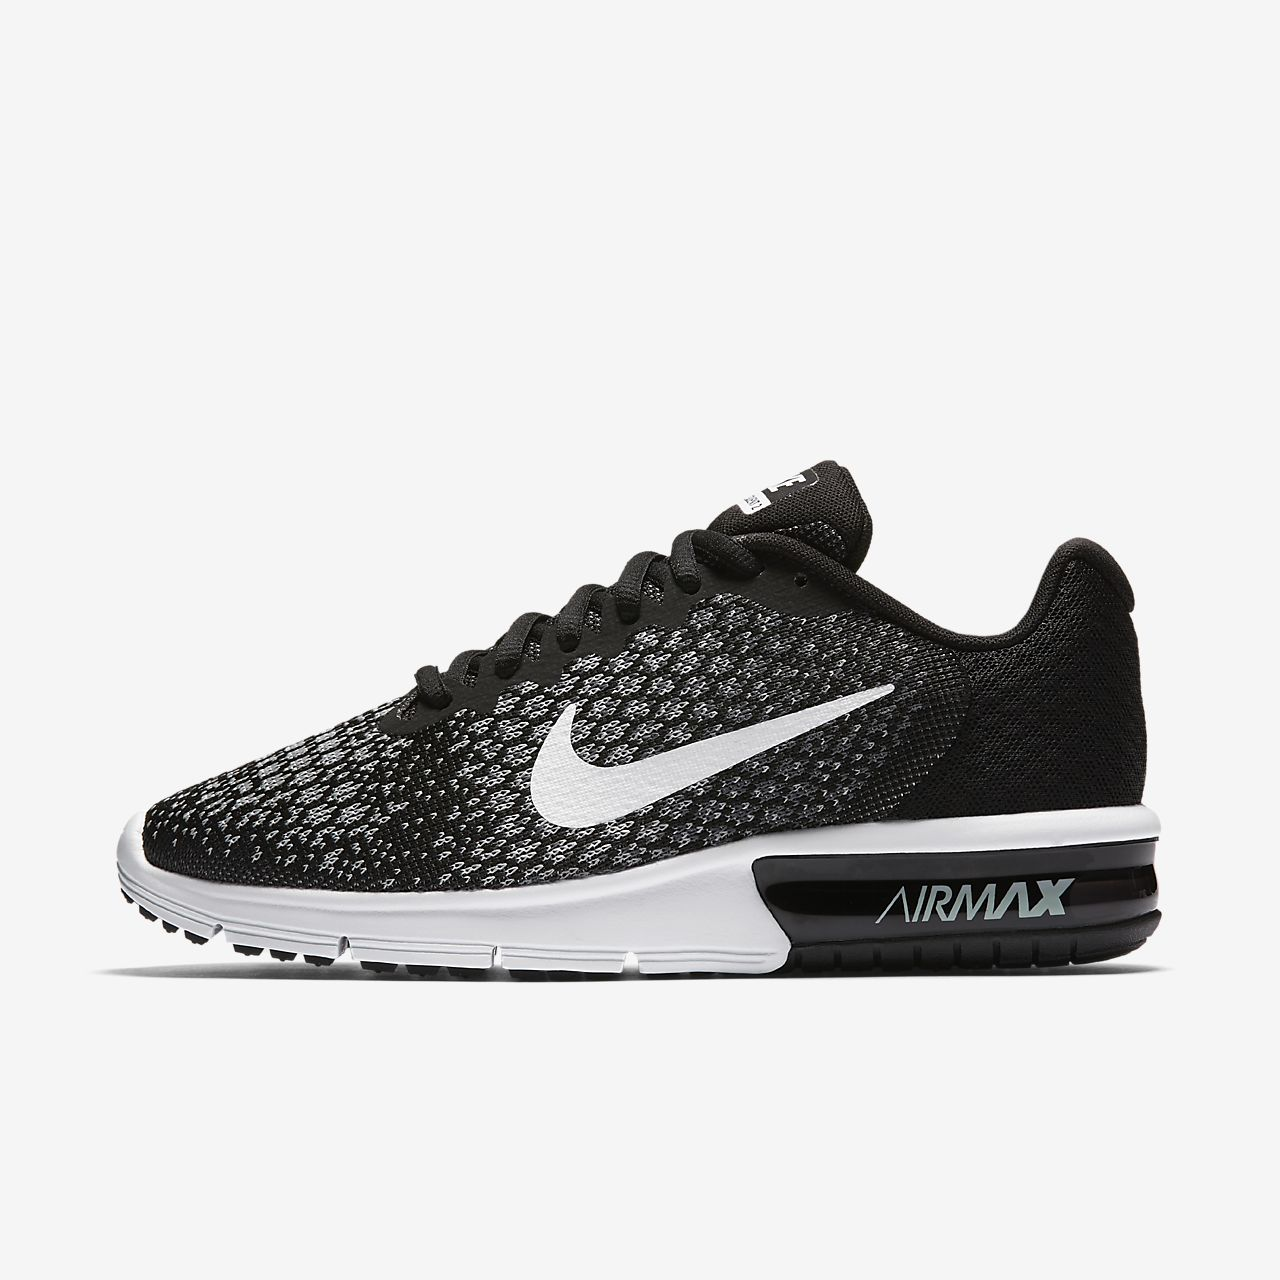 8a4980f7b5 nike air max running shoe cheap > OFF46% The Largest Catalog Discounts